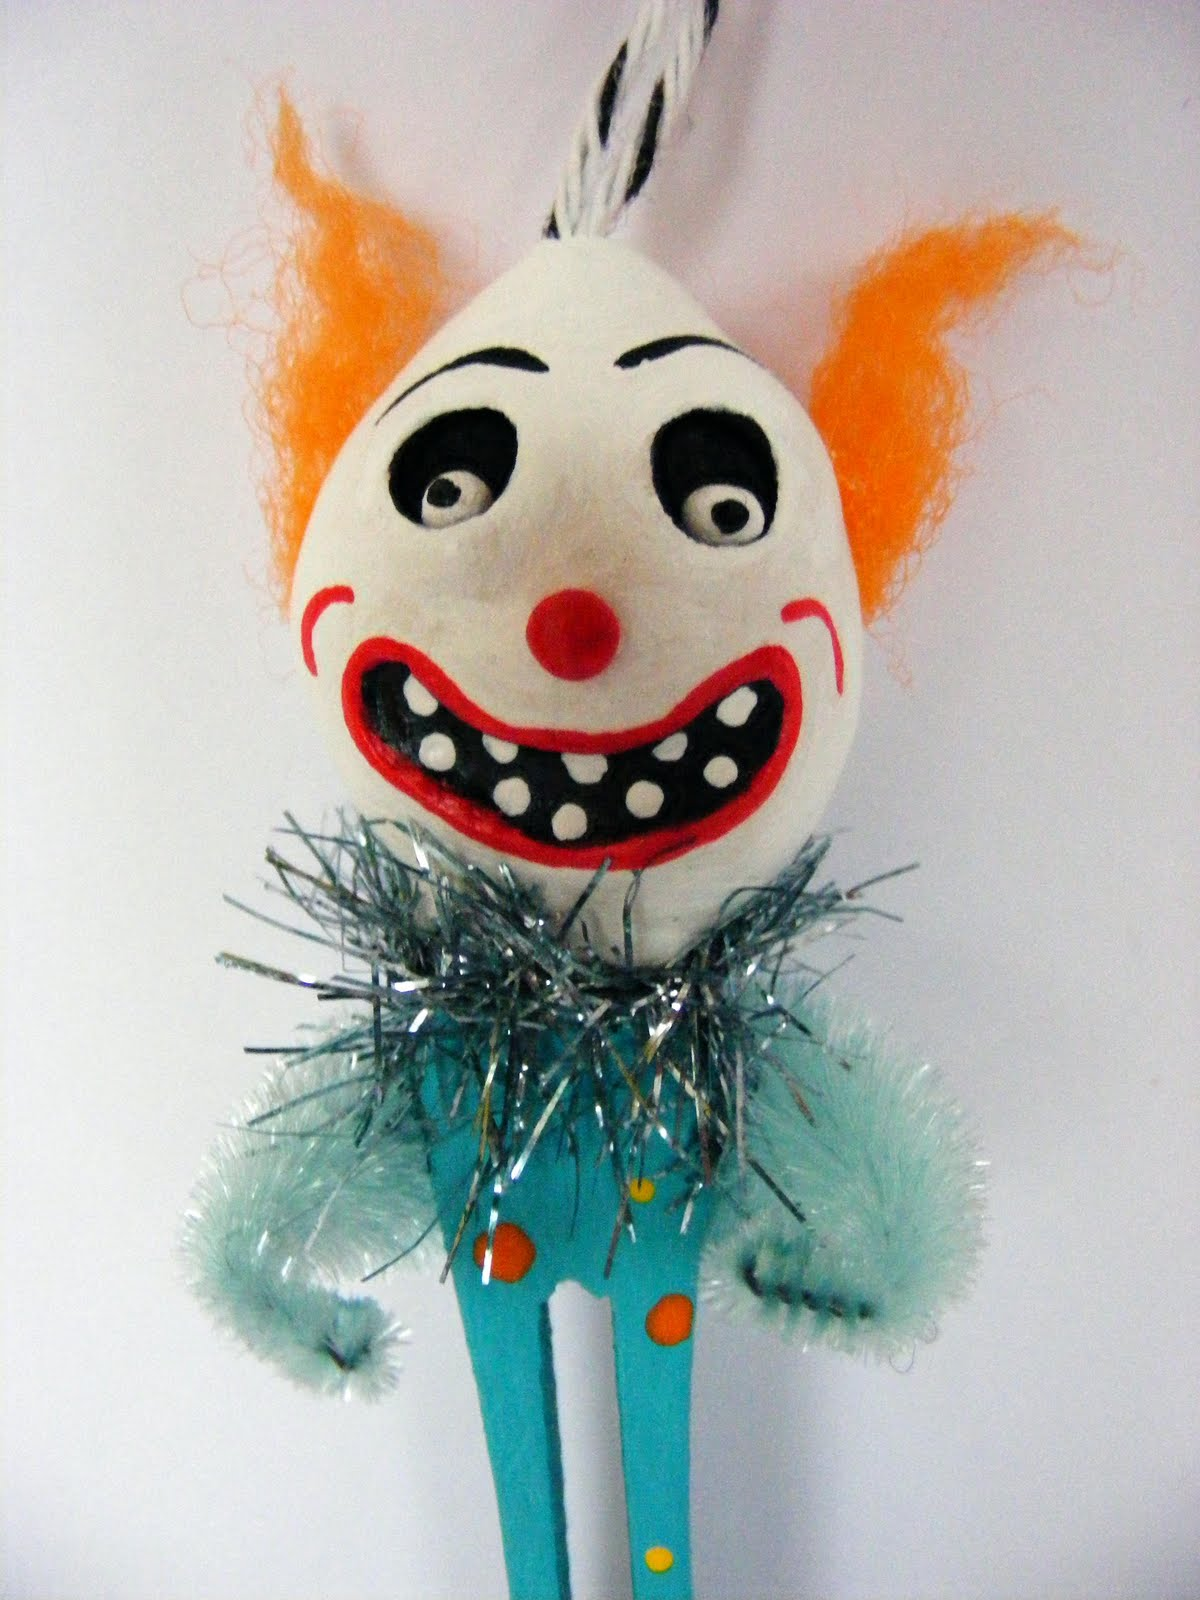 fear of clowns More and more people are seeing clowns prowling streets, both real and -- almost certainly -- imagined.